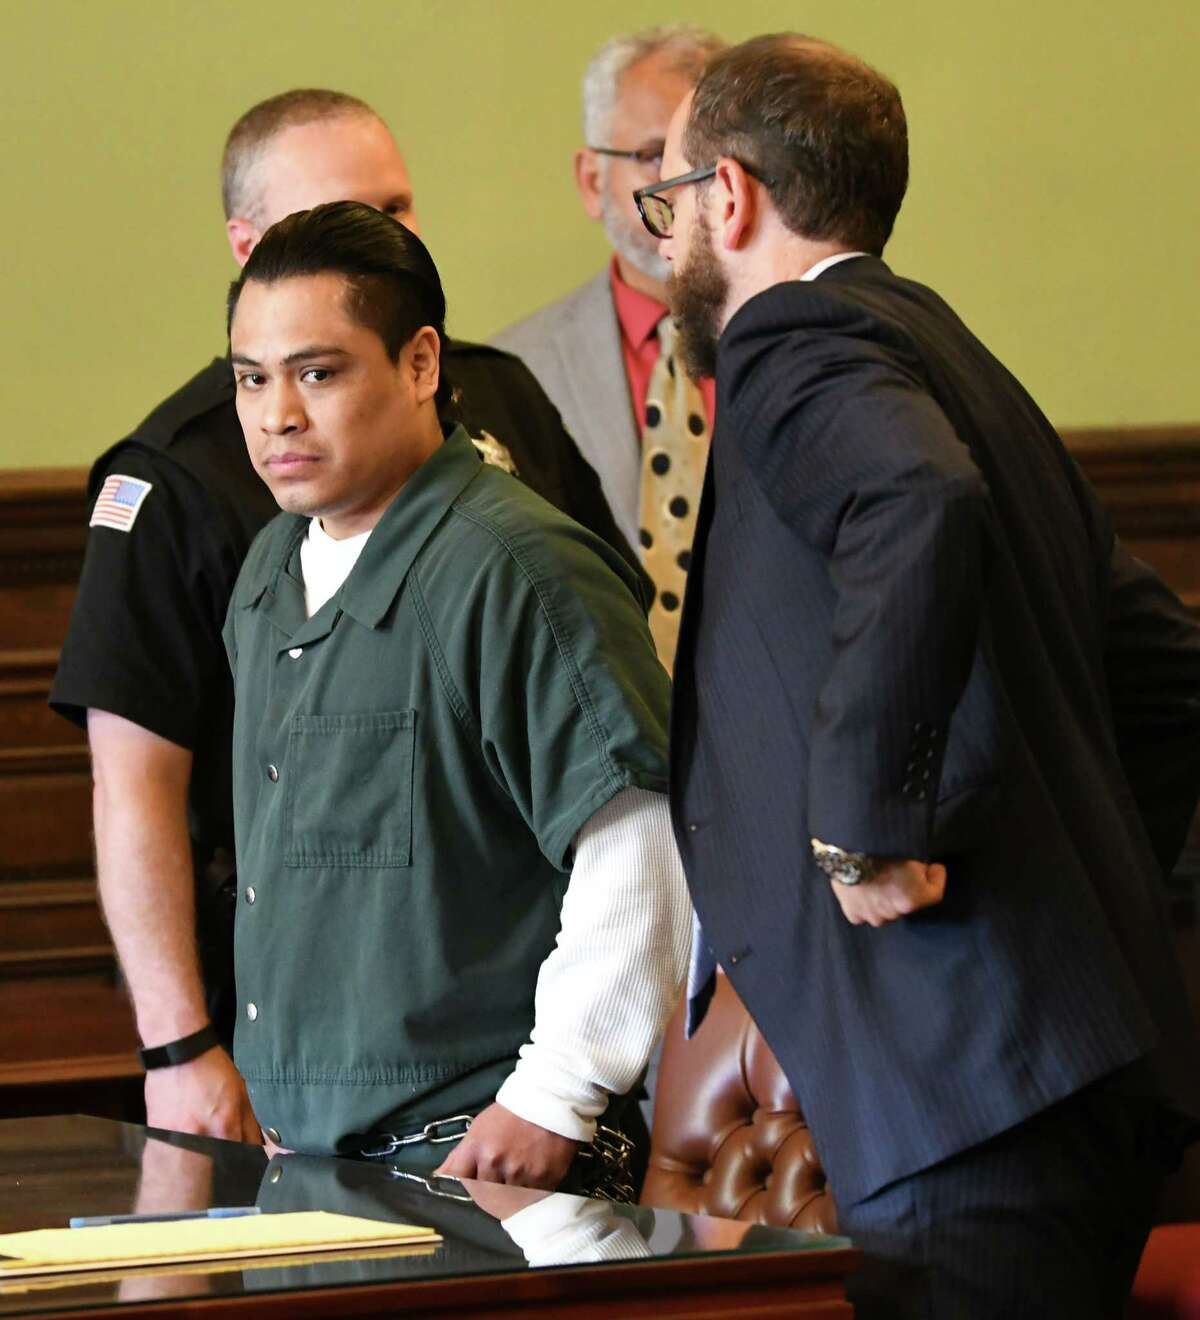 Cresencio Salazar is seen in the courtroom as his attorney Trevor Hannigan, right, talks to a police officer at the Rensselaer County Court House on Thursday, Aug. 2, 2018 in Troy, N.Y. Salazar was not indicted by DA Joel Abelove within 45 days as set by state law in the case of two Mexican nationals allegedly killed by Salazar and three other men, all of whom are Mexican nationals.(Lori Van Buren/Times Union)